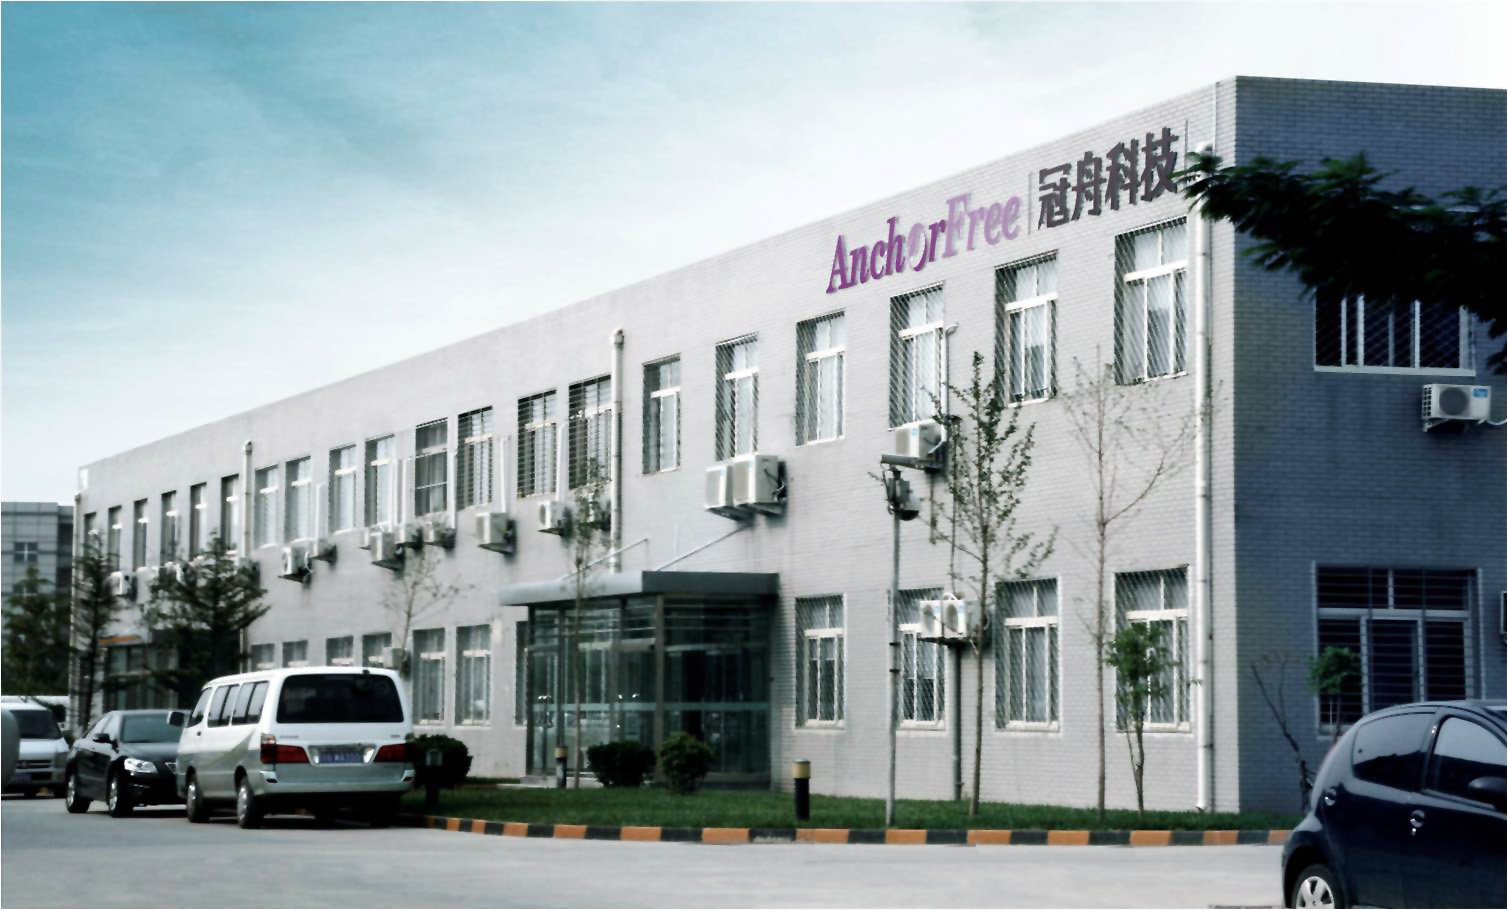 Beijing Anchorfree Technology Co., Ltd.